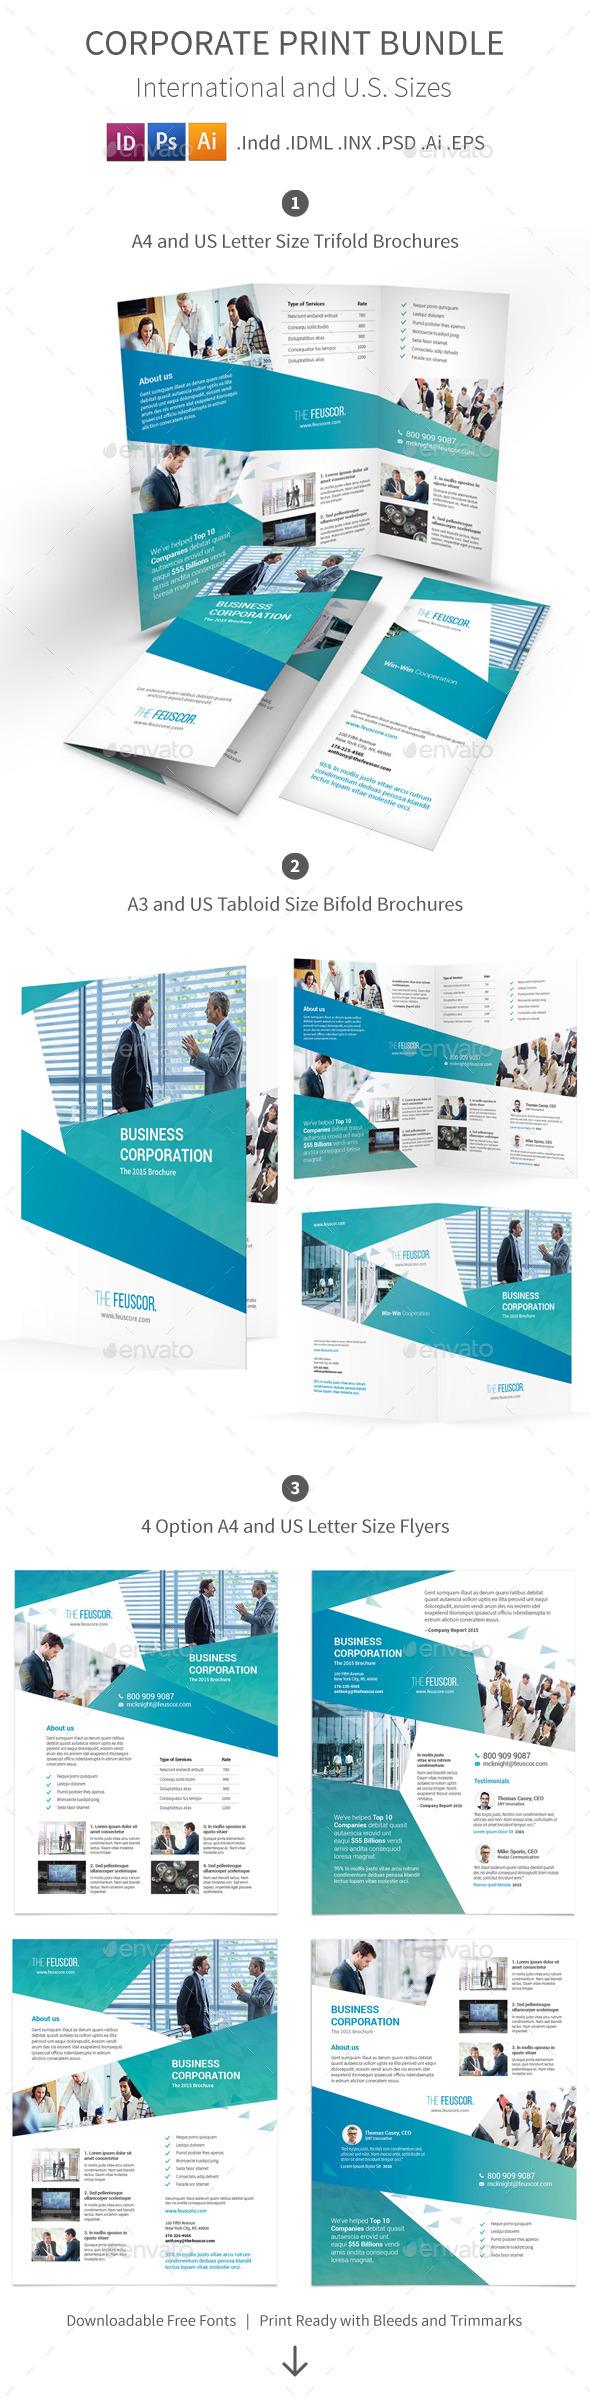 Corporate Company Print Bundle - Corporate Brochures